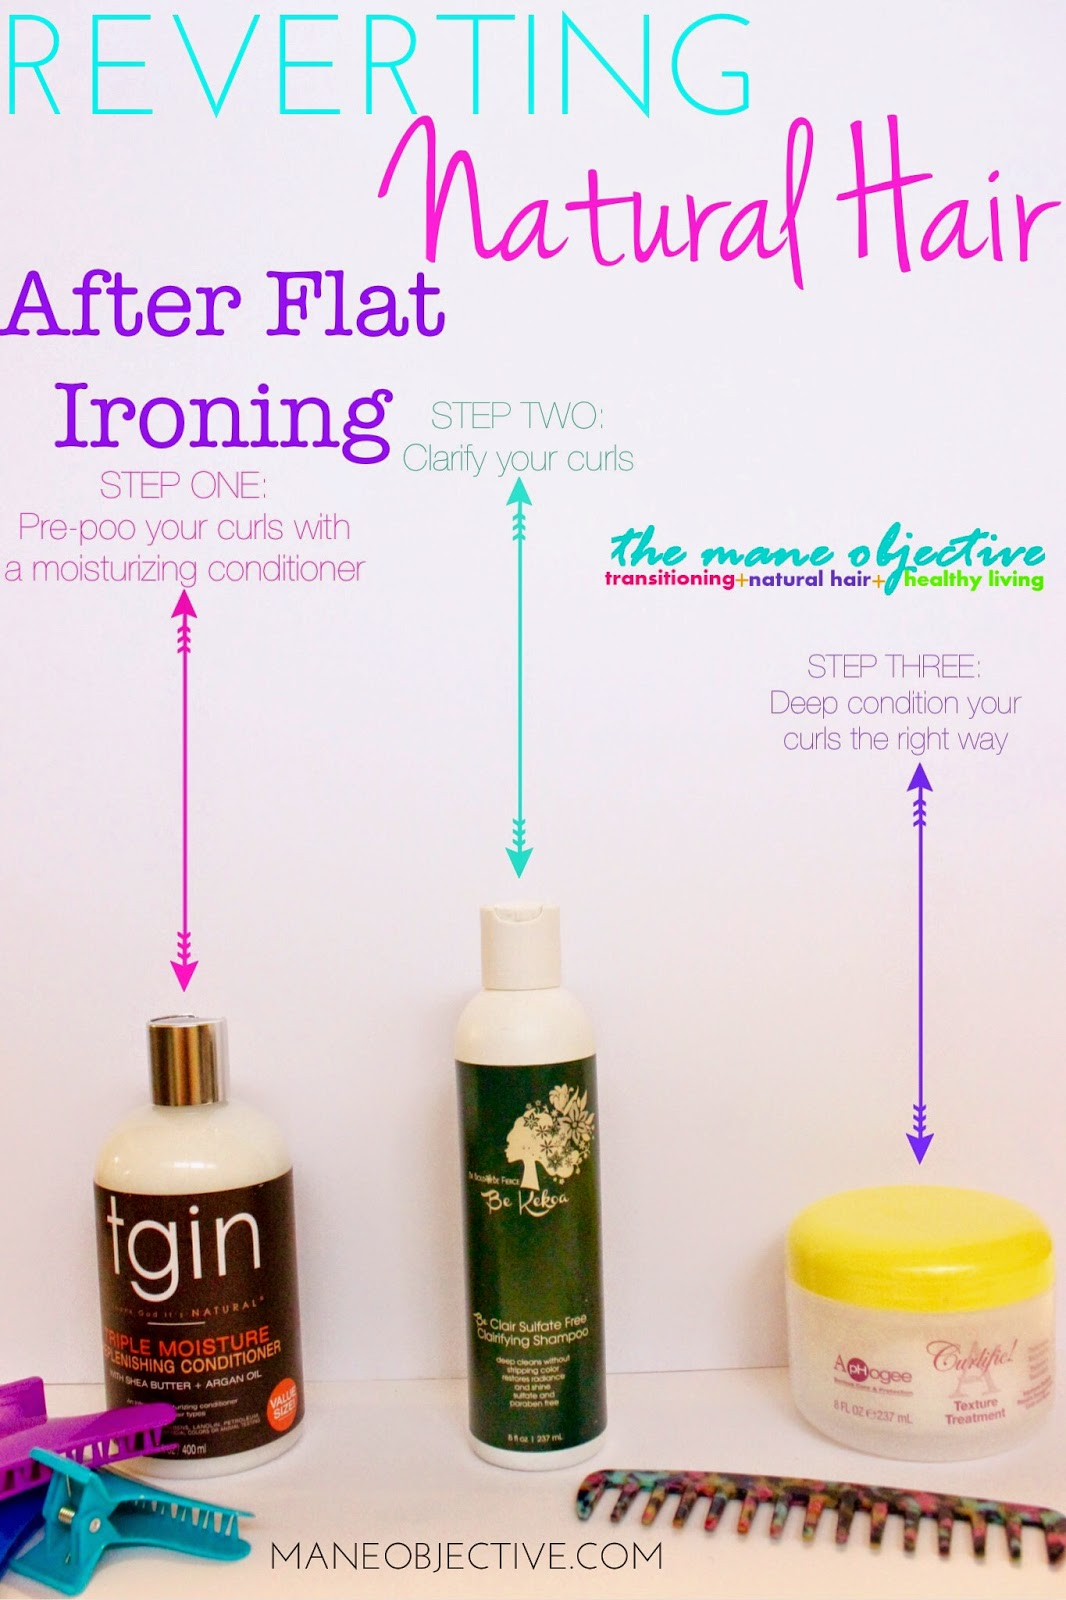 Revert Your Curls After Flat Ironing in 3 Easy Steps